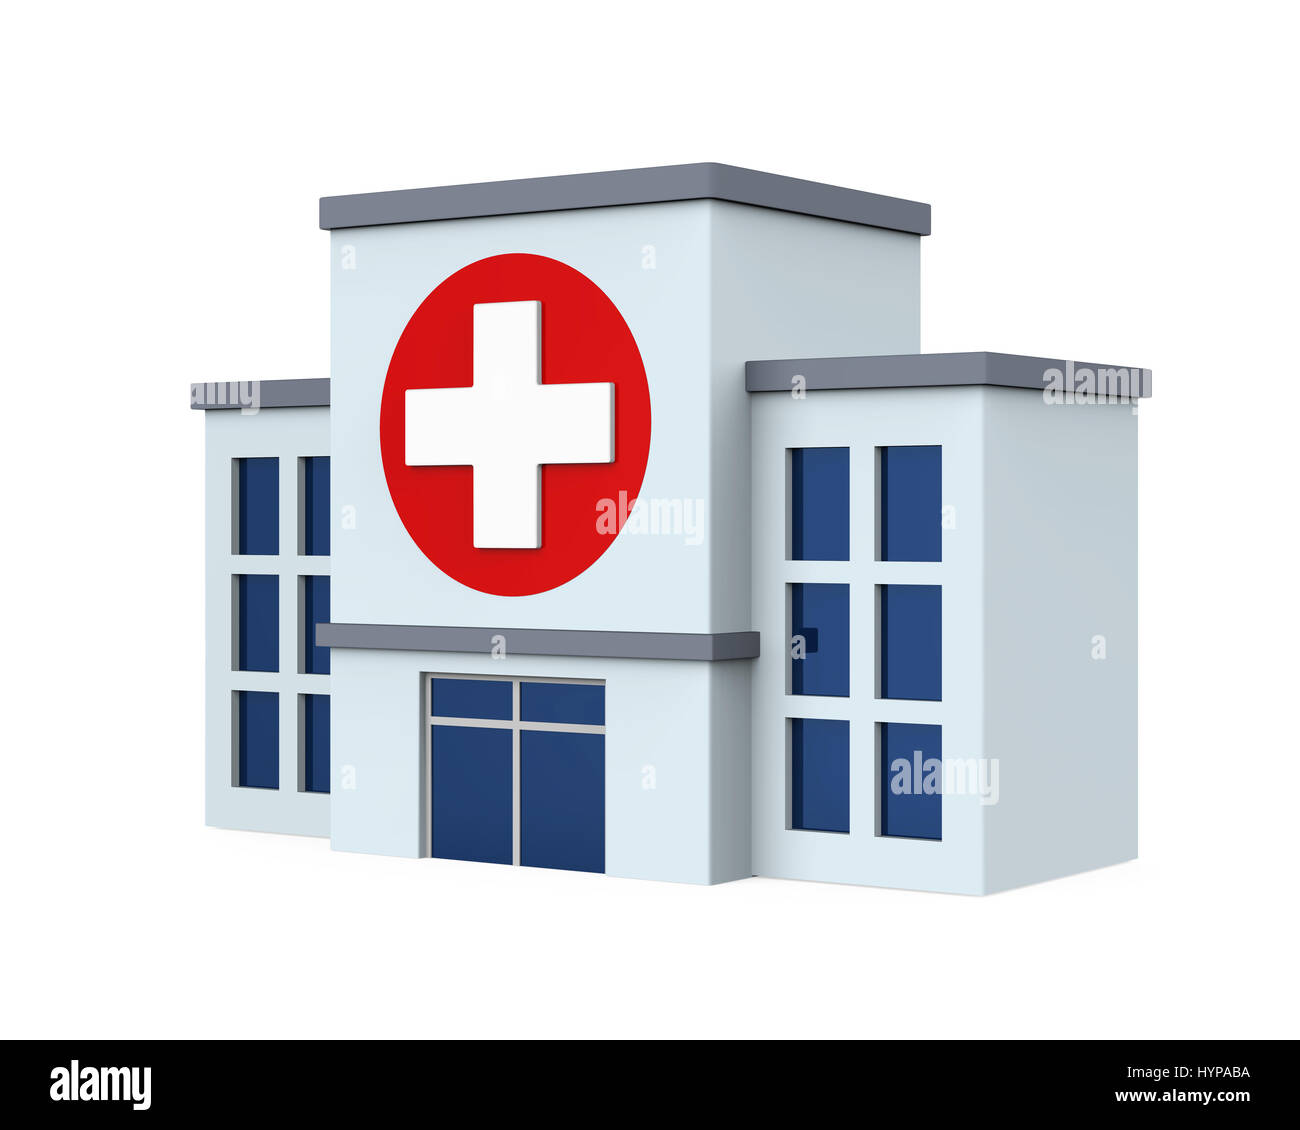 Hospital Building Isolated - Stock Image